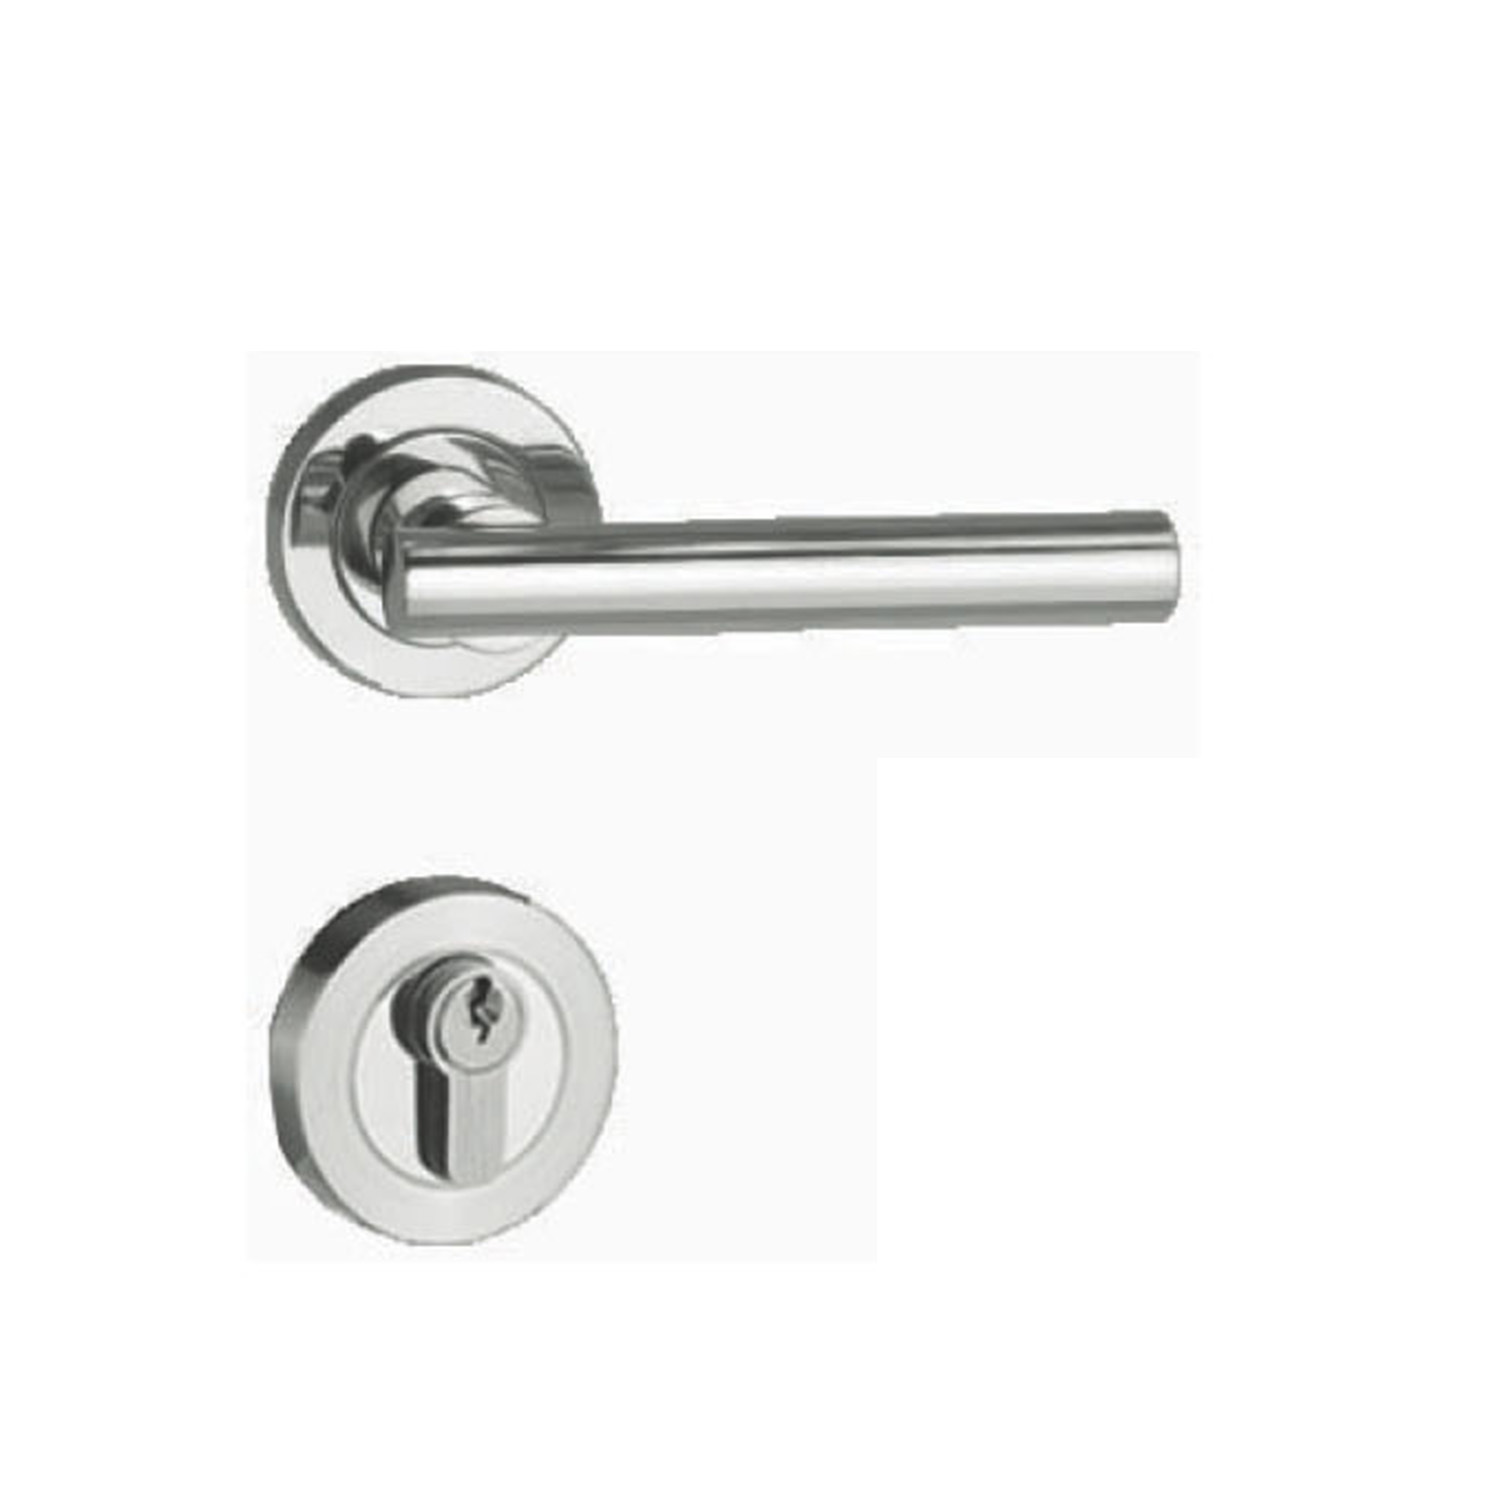 Zinc Alloy Handle Door Lock for Room Door